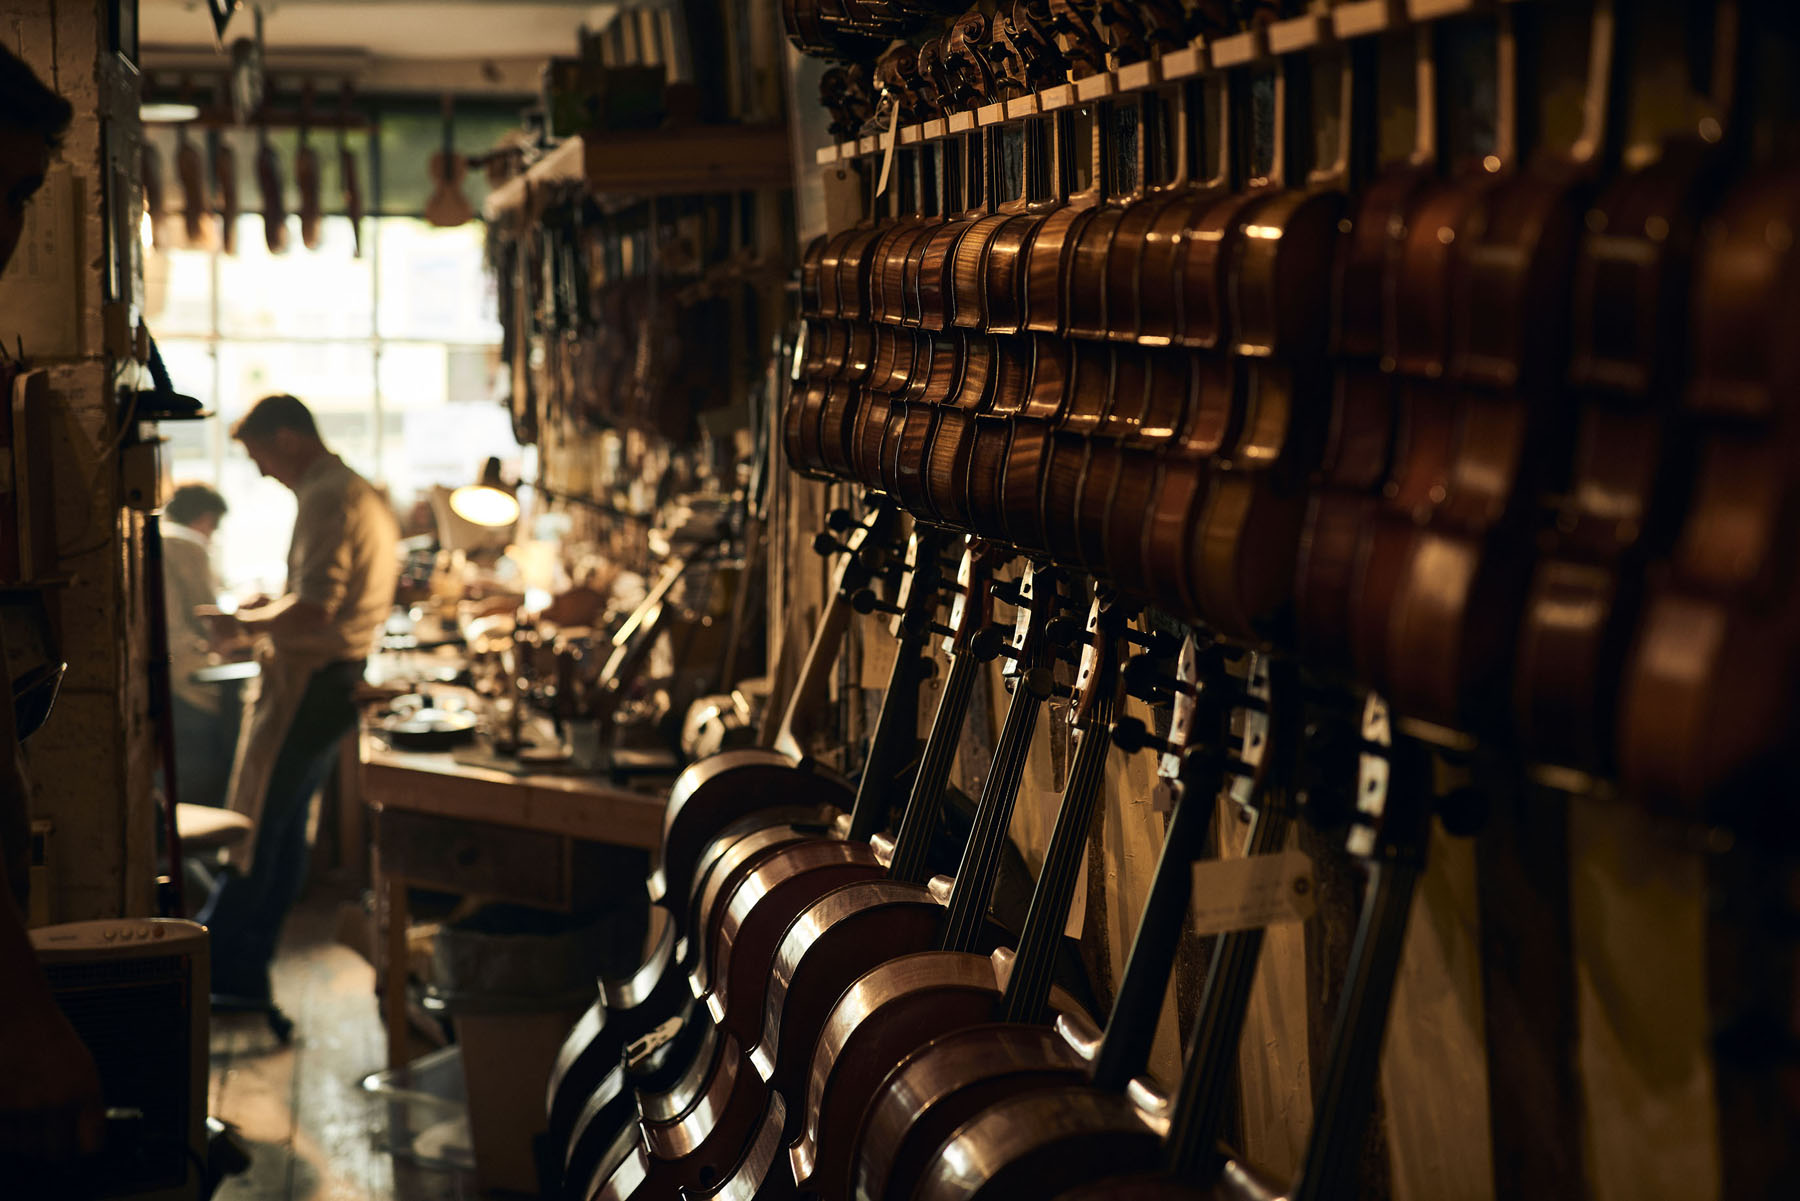 In the violin repair shop